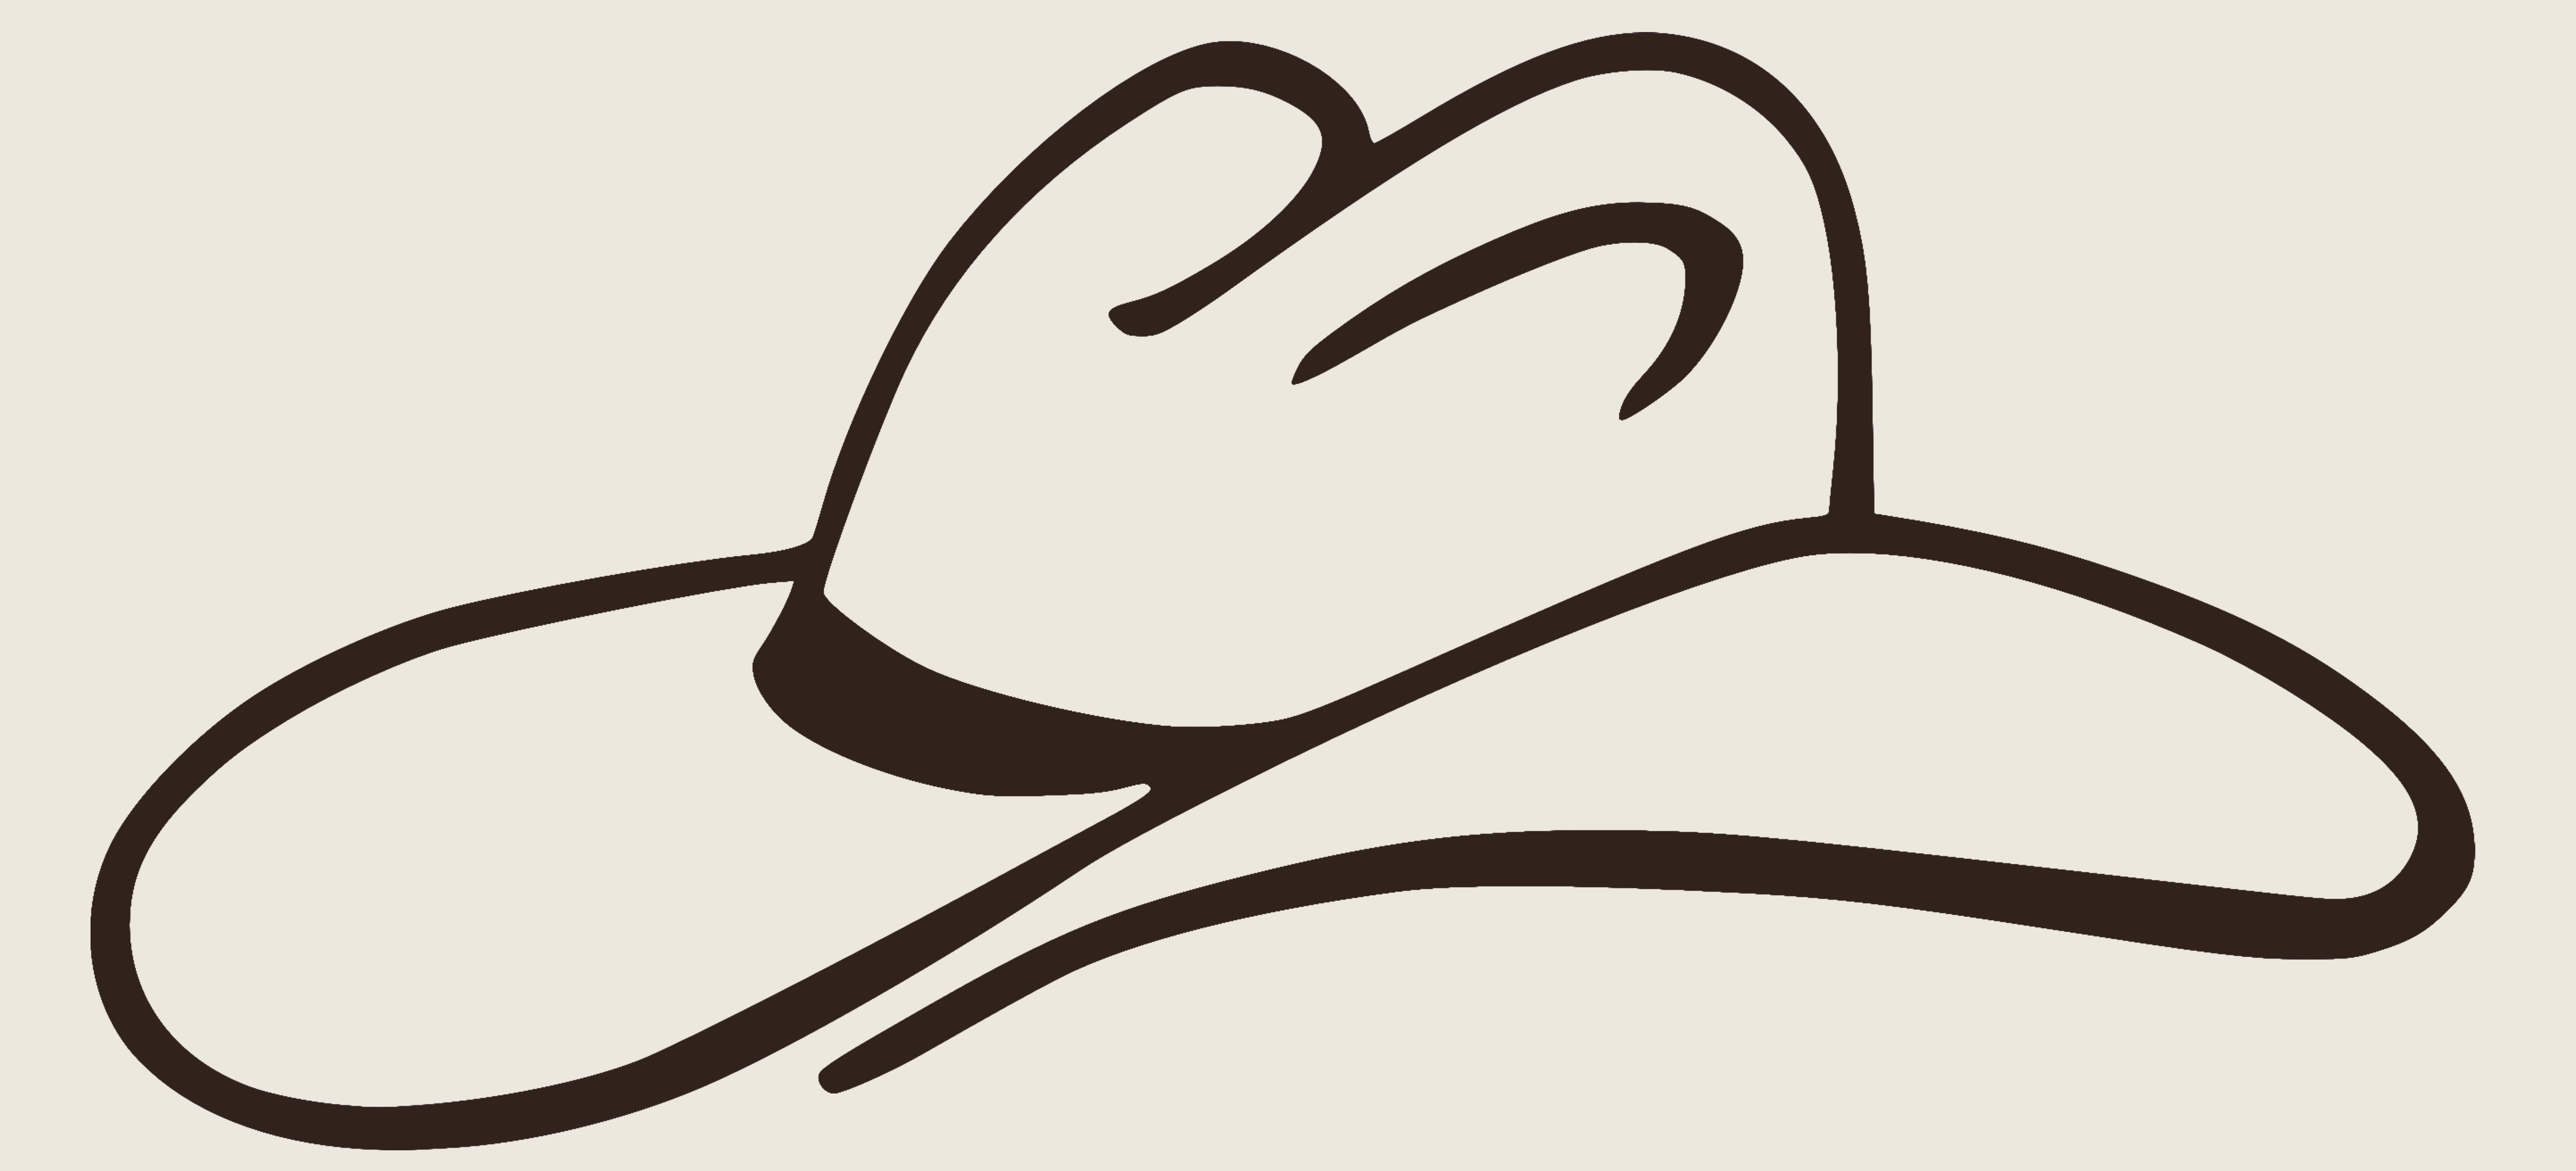 Hd Cowboy Hat Transparent Background Png image #23111